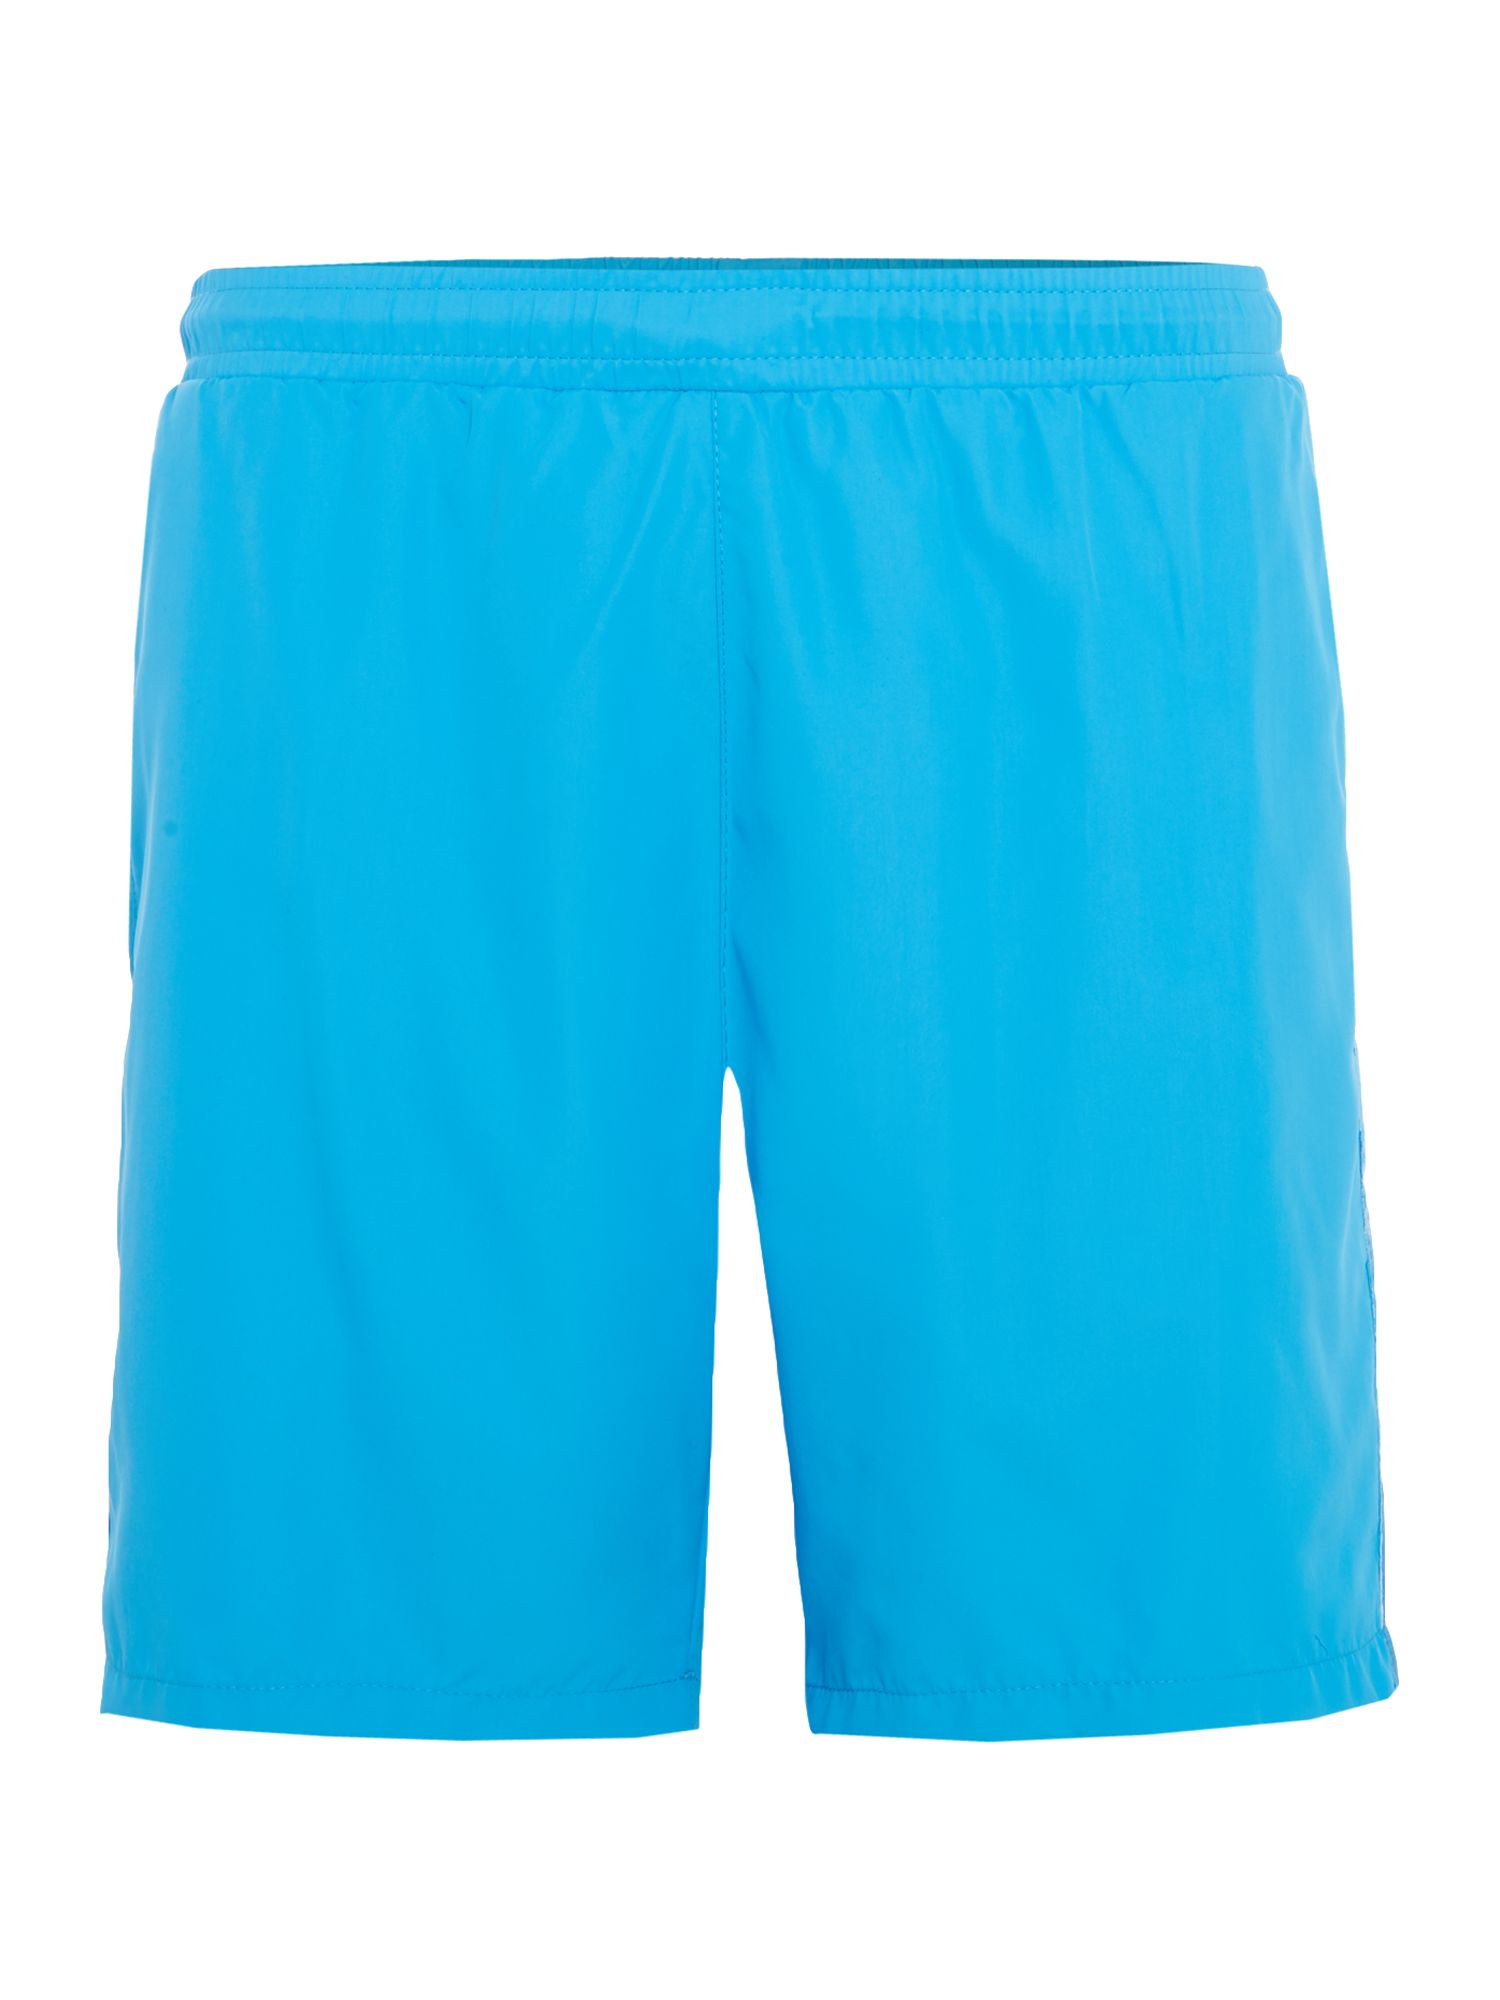 Men's Hugo Boss Seabream Logo Short, Blue